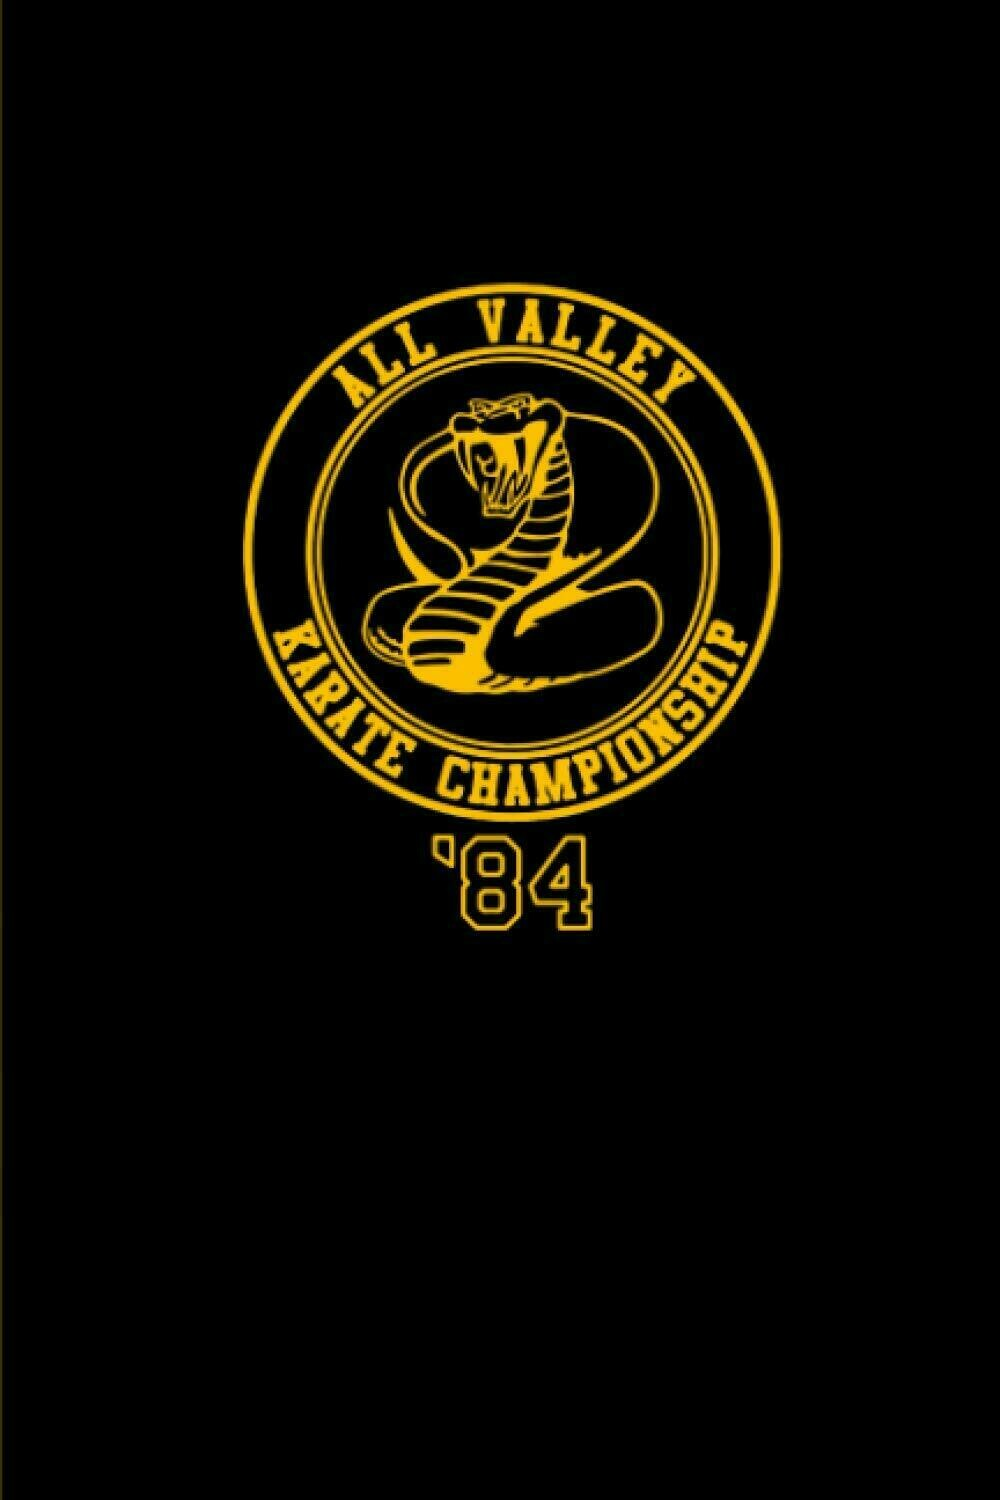 All Valley Karate Championship '84 (KARATE KID / COBRA KAI) Luxury Lined Notebook - Journal Diary Writing Paper Pad Movie Prop Replica